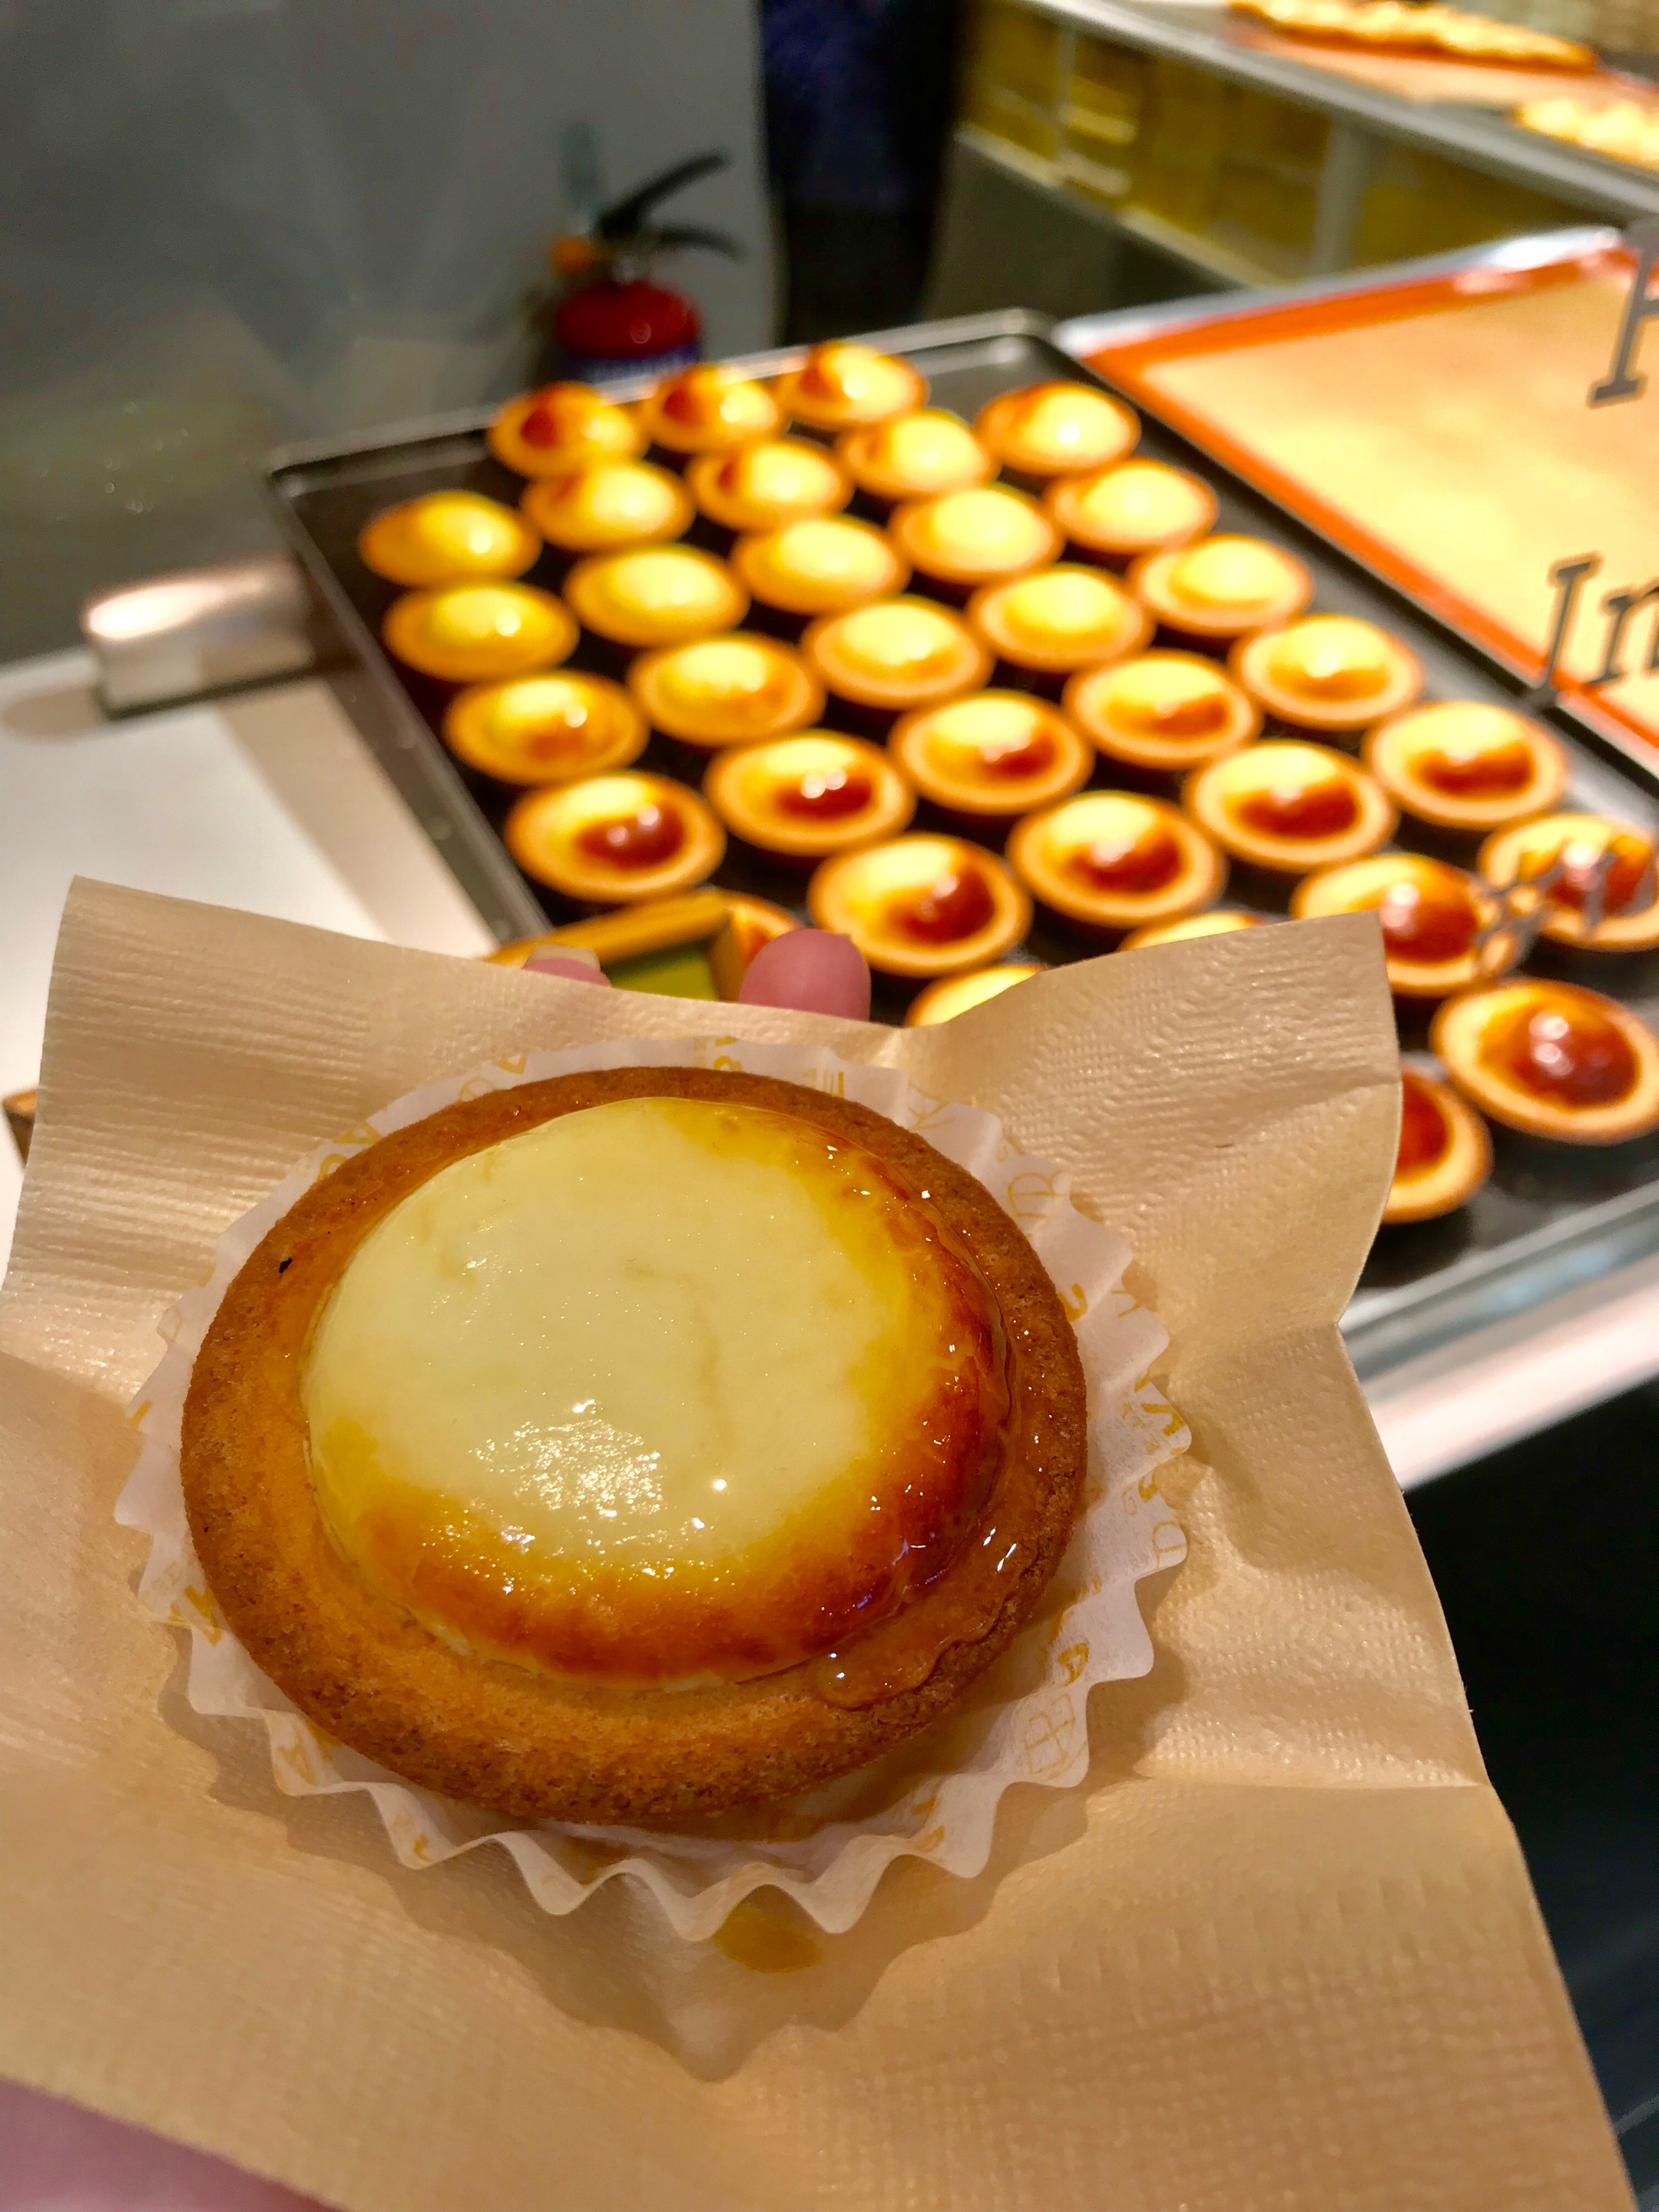 Lemon Cheese Tart With Honey ($3.90)